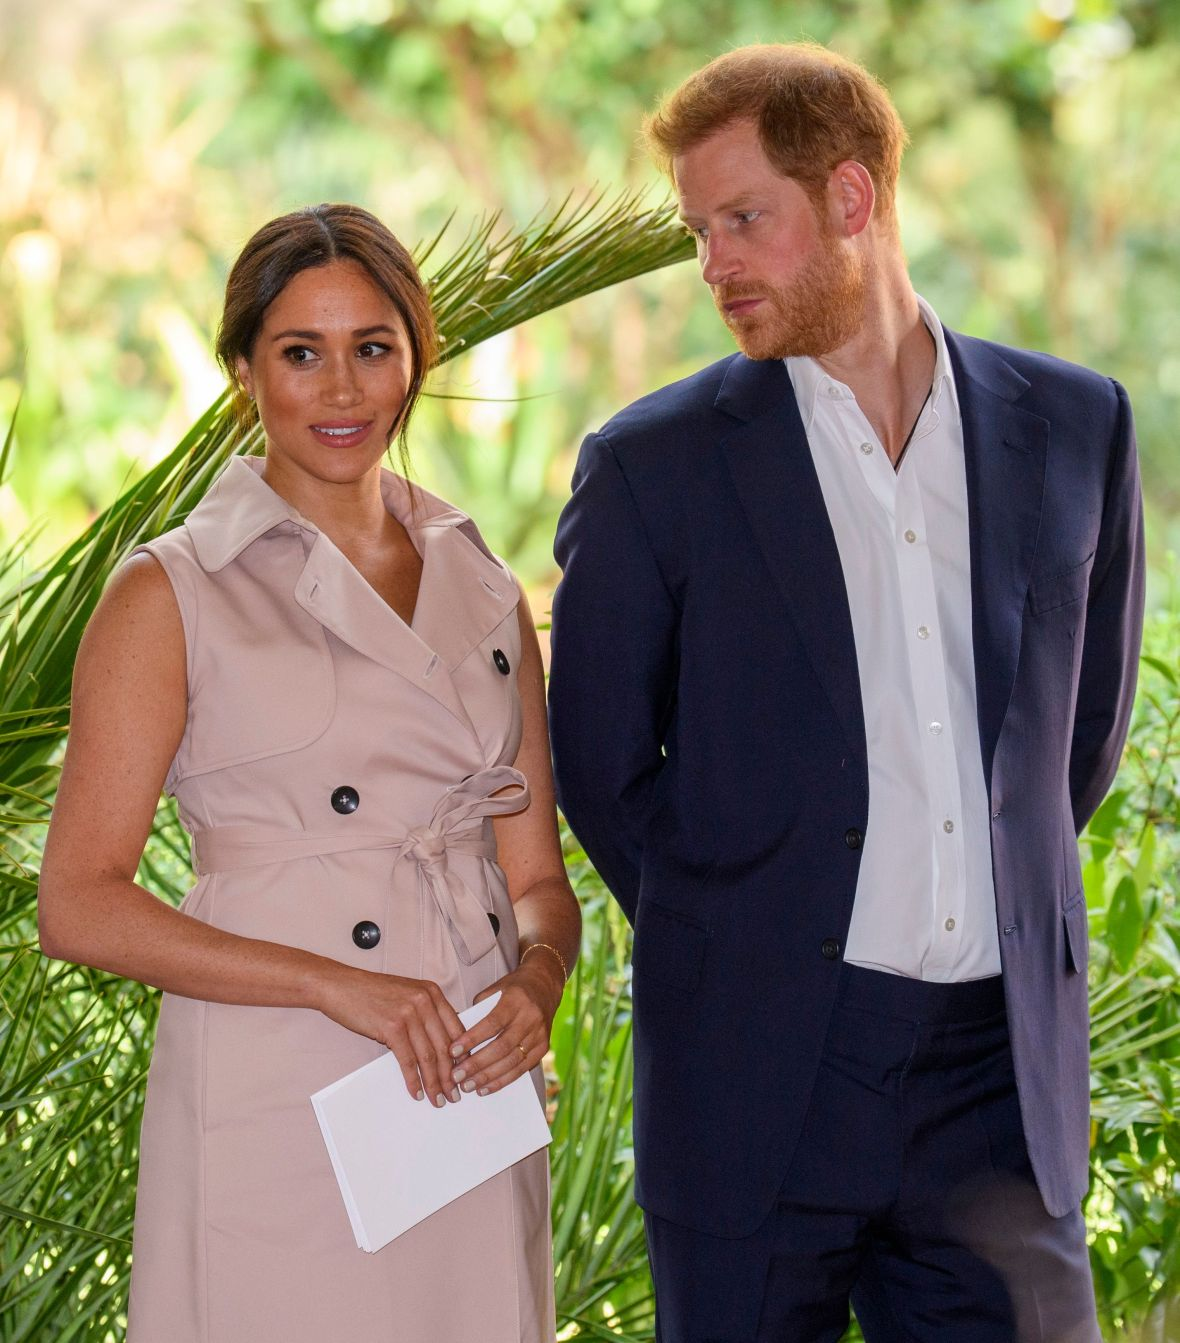 Prince Harry Thinks Royal Family Didn't 'Protect' Meghan Markle: 'They Didn't Welcome Her' feature